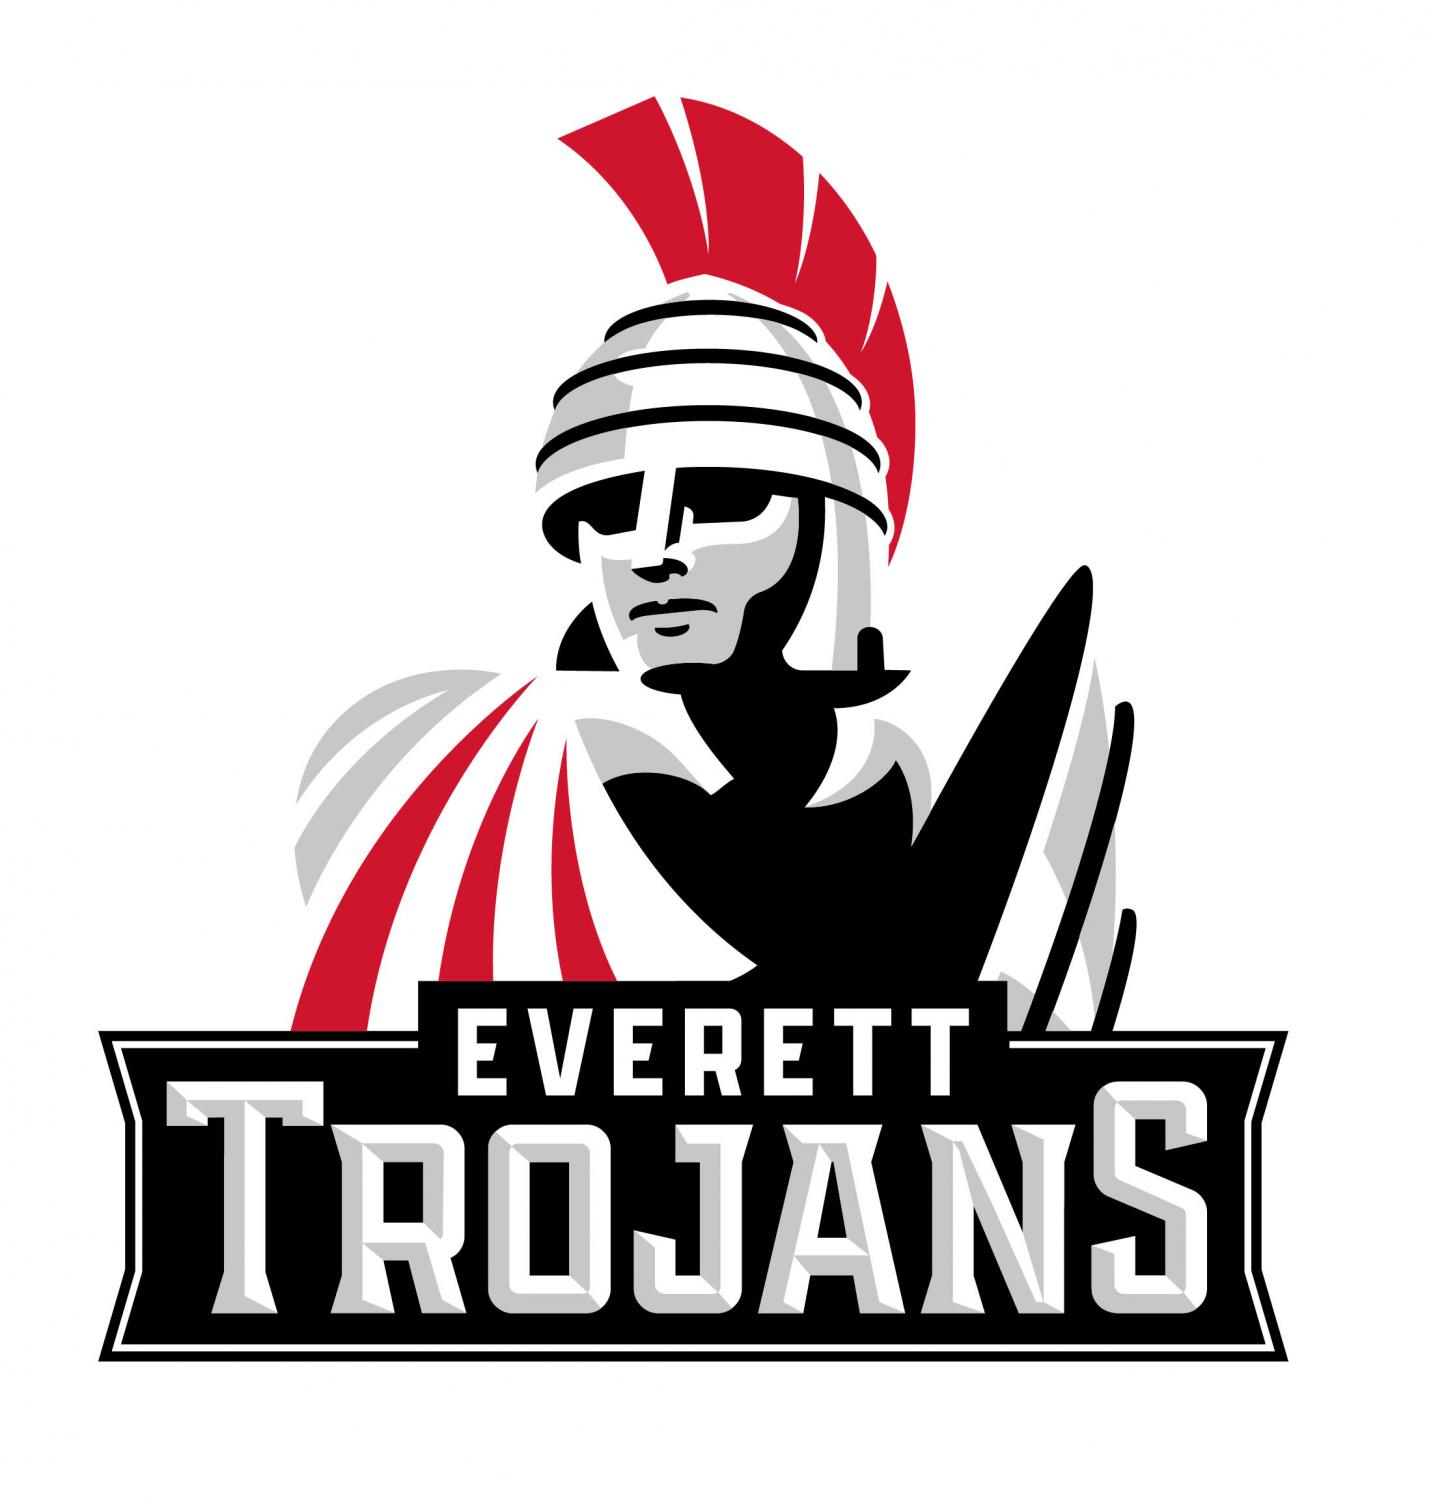 The new EvCC Trojan design, by Jeremy Slagle.